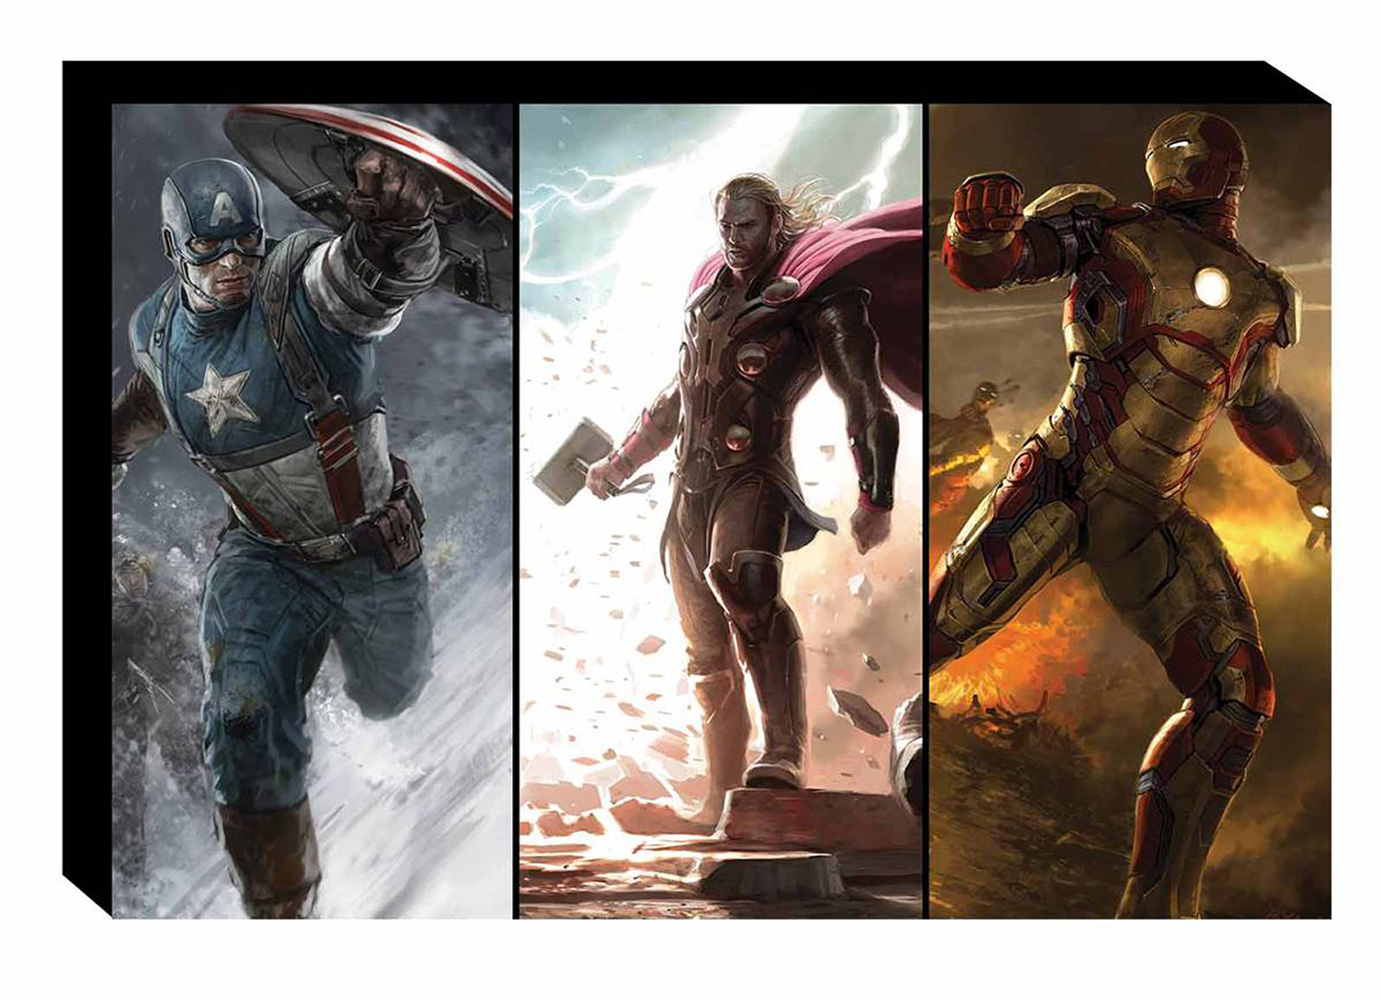 The Road to Marvel's Avengers: Age of Ultron - The Art of Marvel's Cinematic Universe